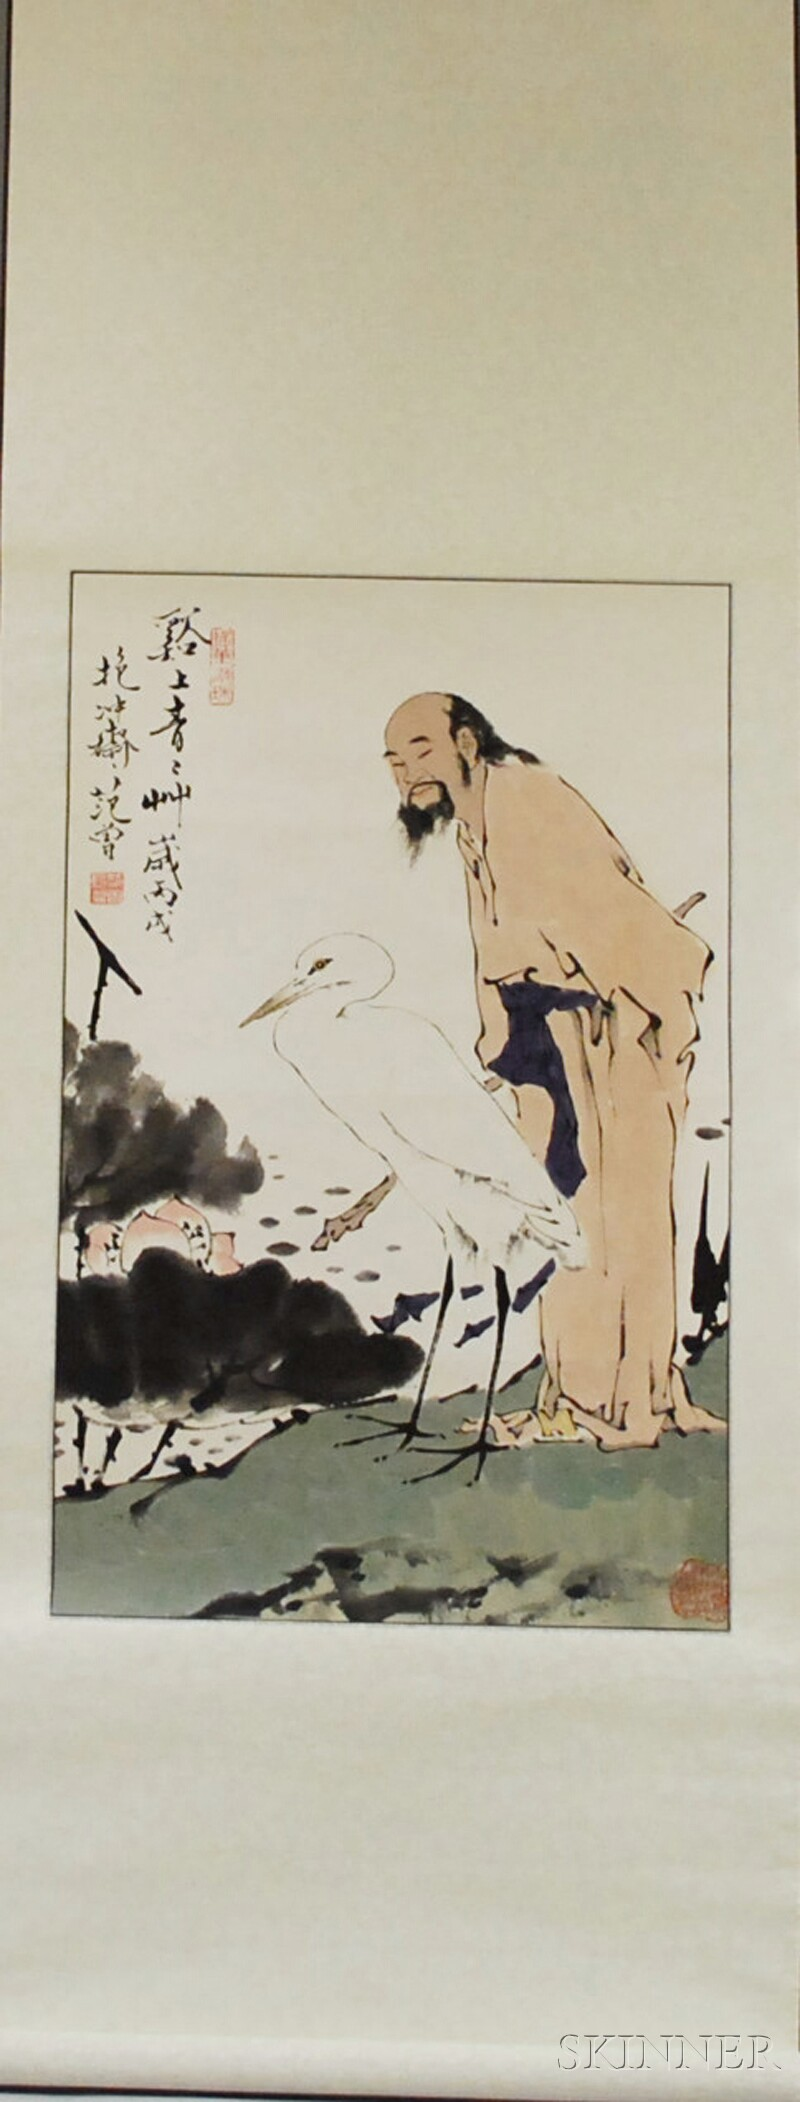 Chinese Ink and Watercolor on Paper Hanging Scroll Depicting a Scholar with a Crane